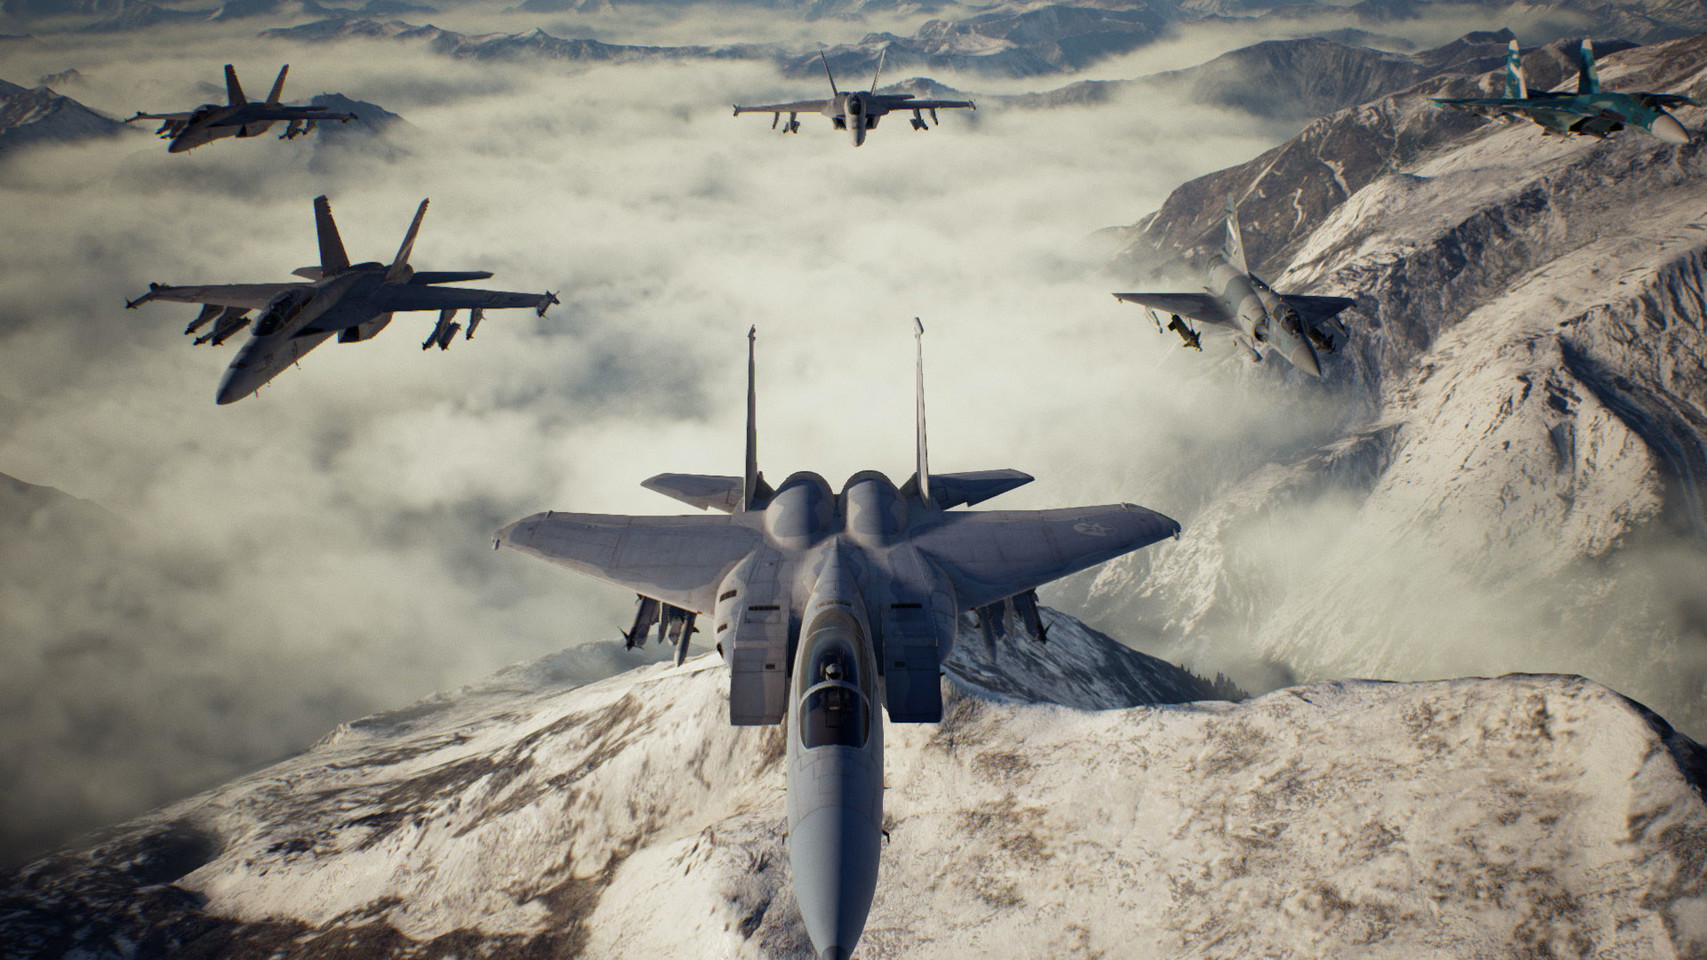 Ace Combat 7: Skies Unknown System Requirements and Performance